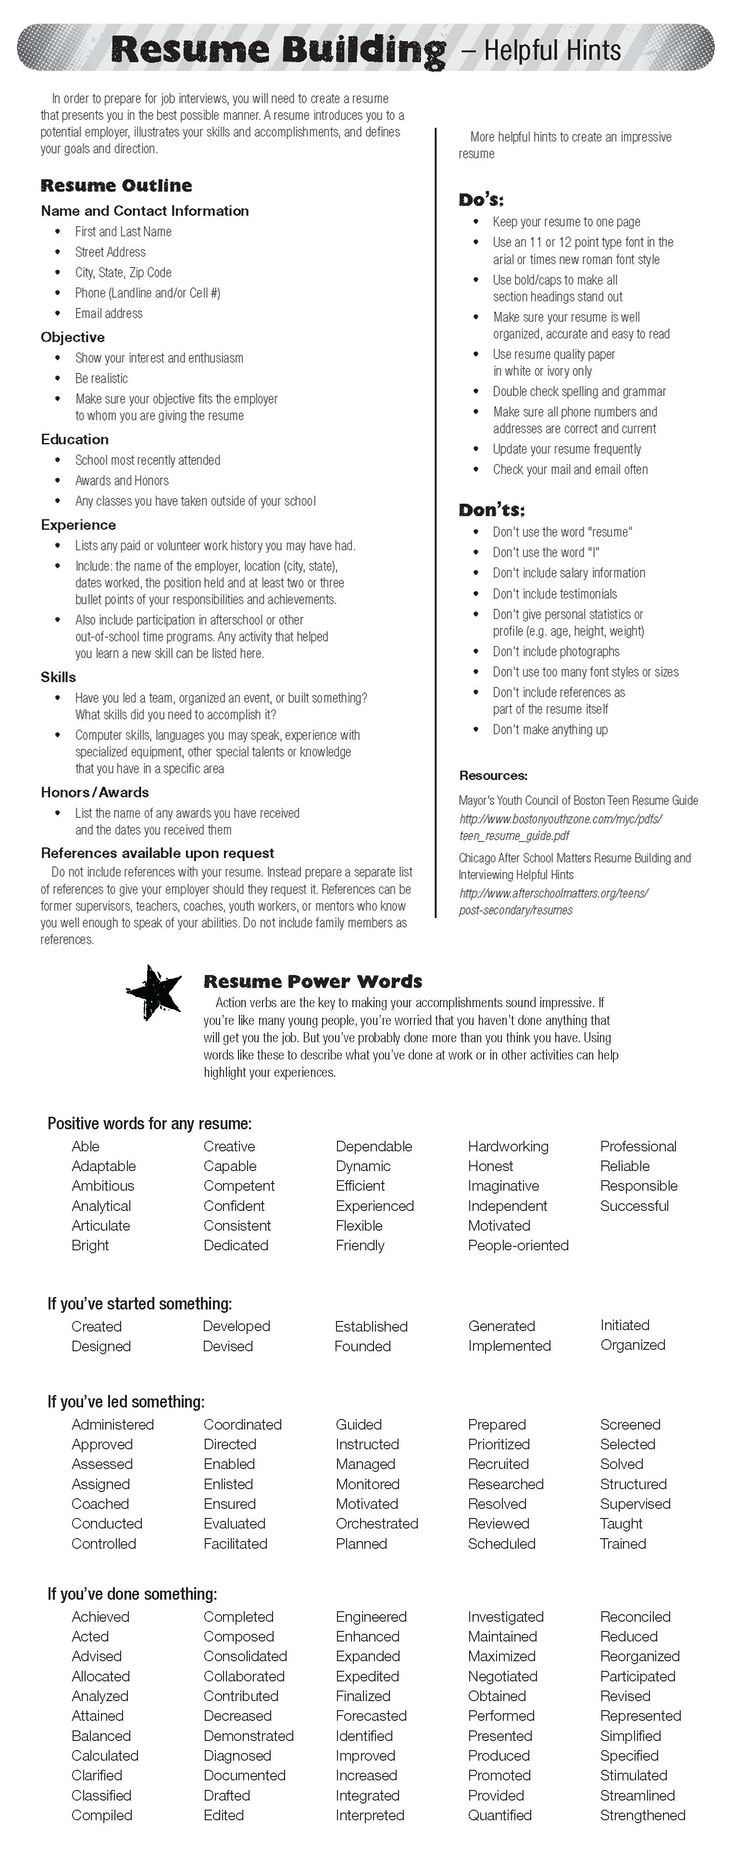 Opposenewapstandardsus  Nice  Ideas About Resume On Pinterest  Cv Format Resume Cv And  With Magnificent  Ideas About Resume On Pinterest  Cv Format Resume Cv And Resume Templates With Cute Sample Resume Skills Also How To Make A Resume On Microsoft Word In Addition How To Do A Job Resume And Manager Resume Examples As Well As Executive Resume Writer Additionally Private Equity Resume From Pinterestcom With Opposenewapstandardsus  Magnificent  Ideas About Resume On Pinterest  Cv Format Resume Cv And  With Cute  Ideas About Resume On Pinterest  Cv Format Resume Cv And Resume Templates And Nice Sample Resume Skills Also How To Make A Resume On Microsoft Word In Addition How To Do A Job Resume From Pinterestcom